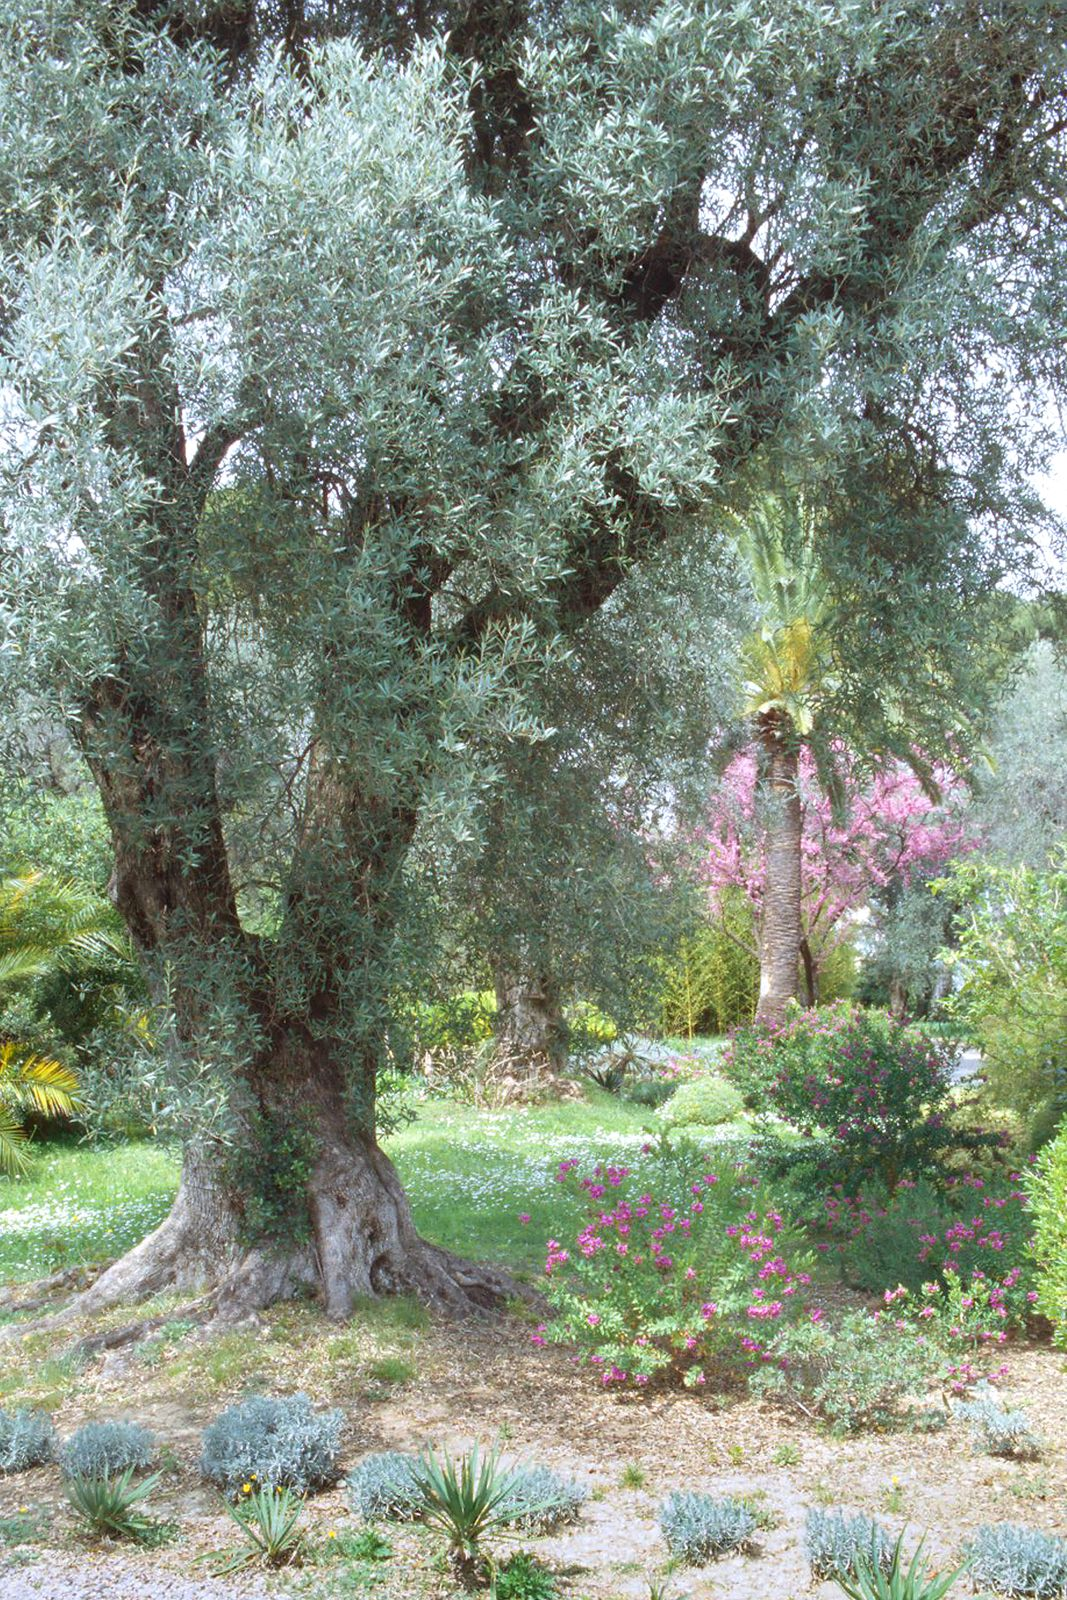 Renoir S Garden Cagnes Sur Mer France I M So Lucky To Have Visited Renoir S Home In The South Of France Jardines Paisajes Pierre Auguste Renoir